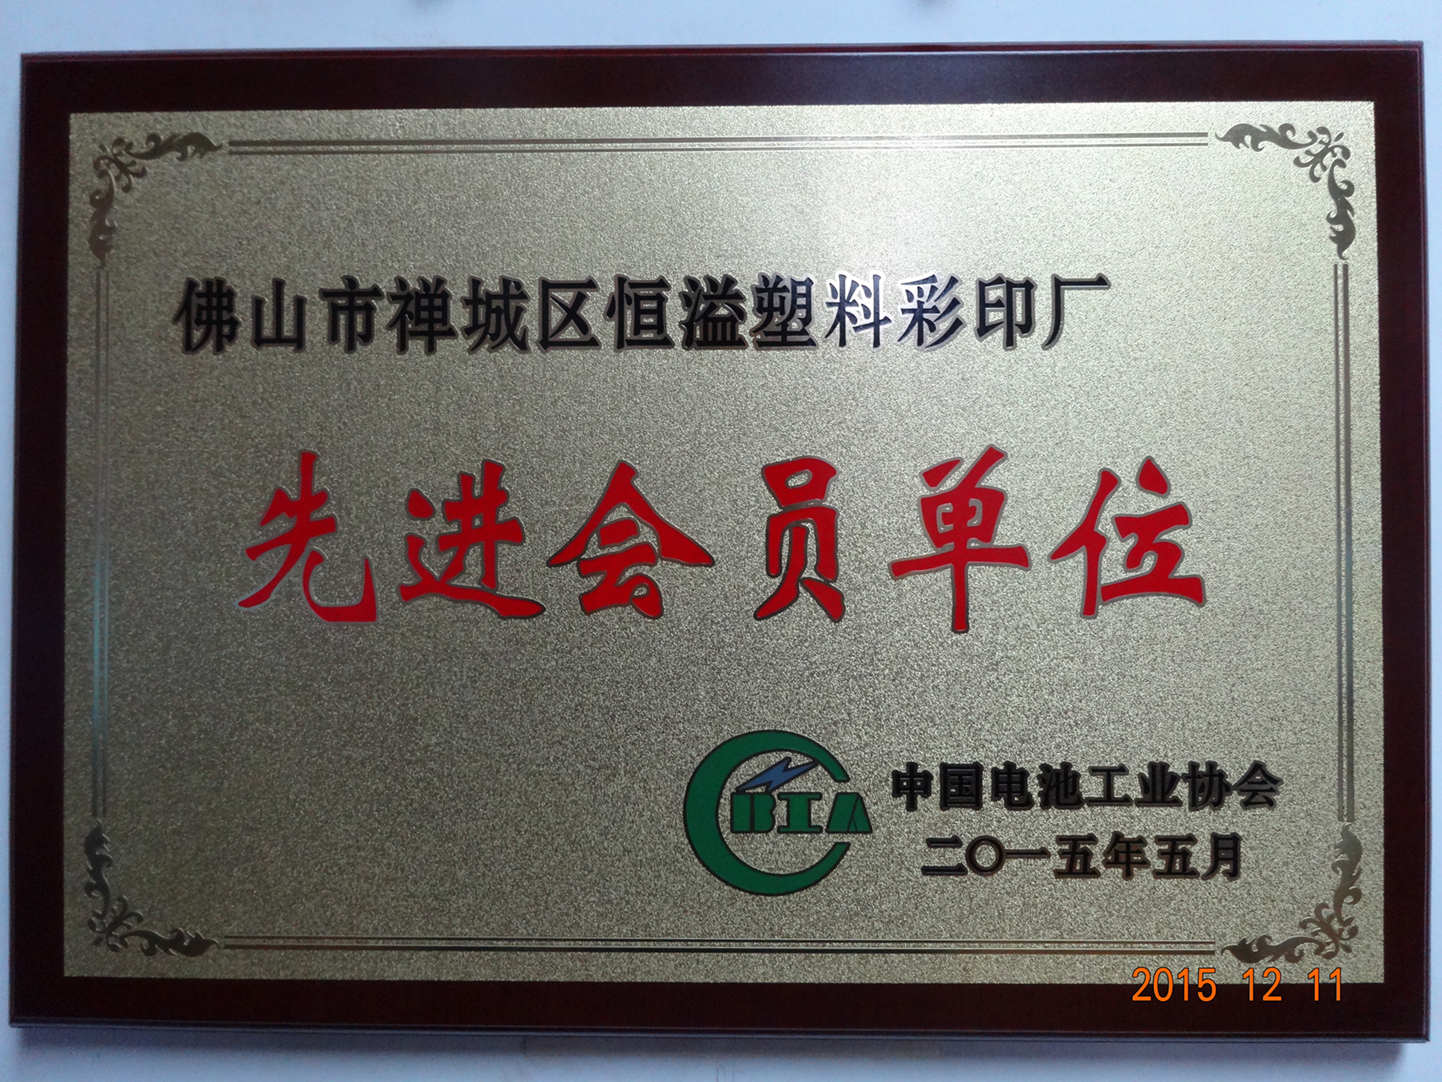 Member of Battery Industry Association